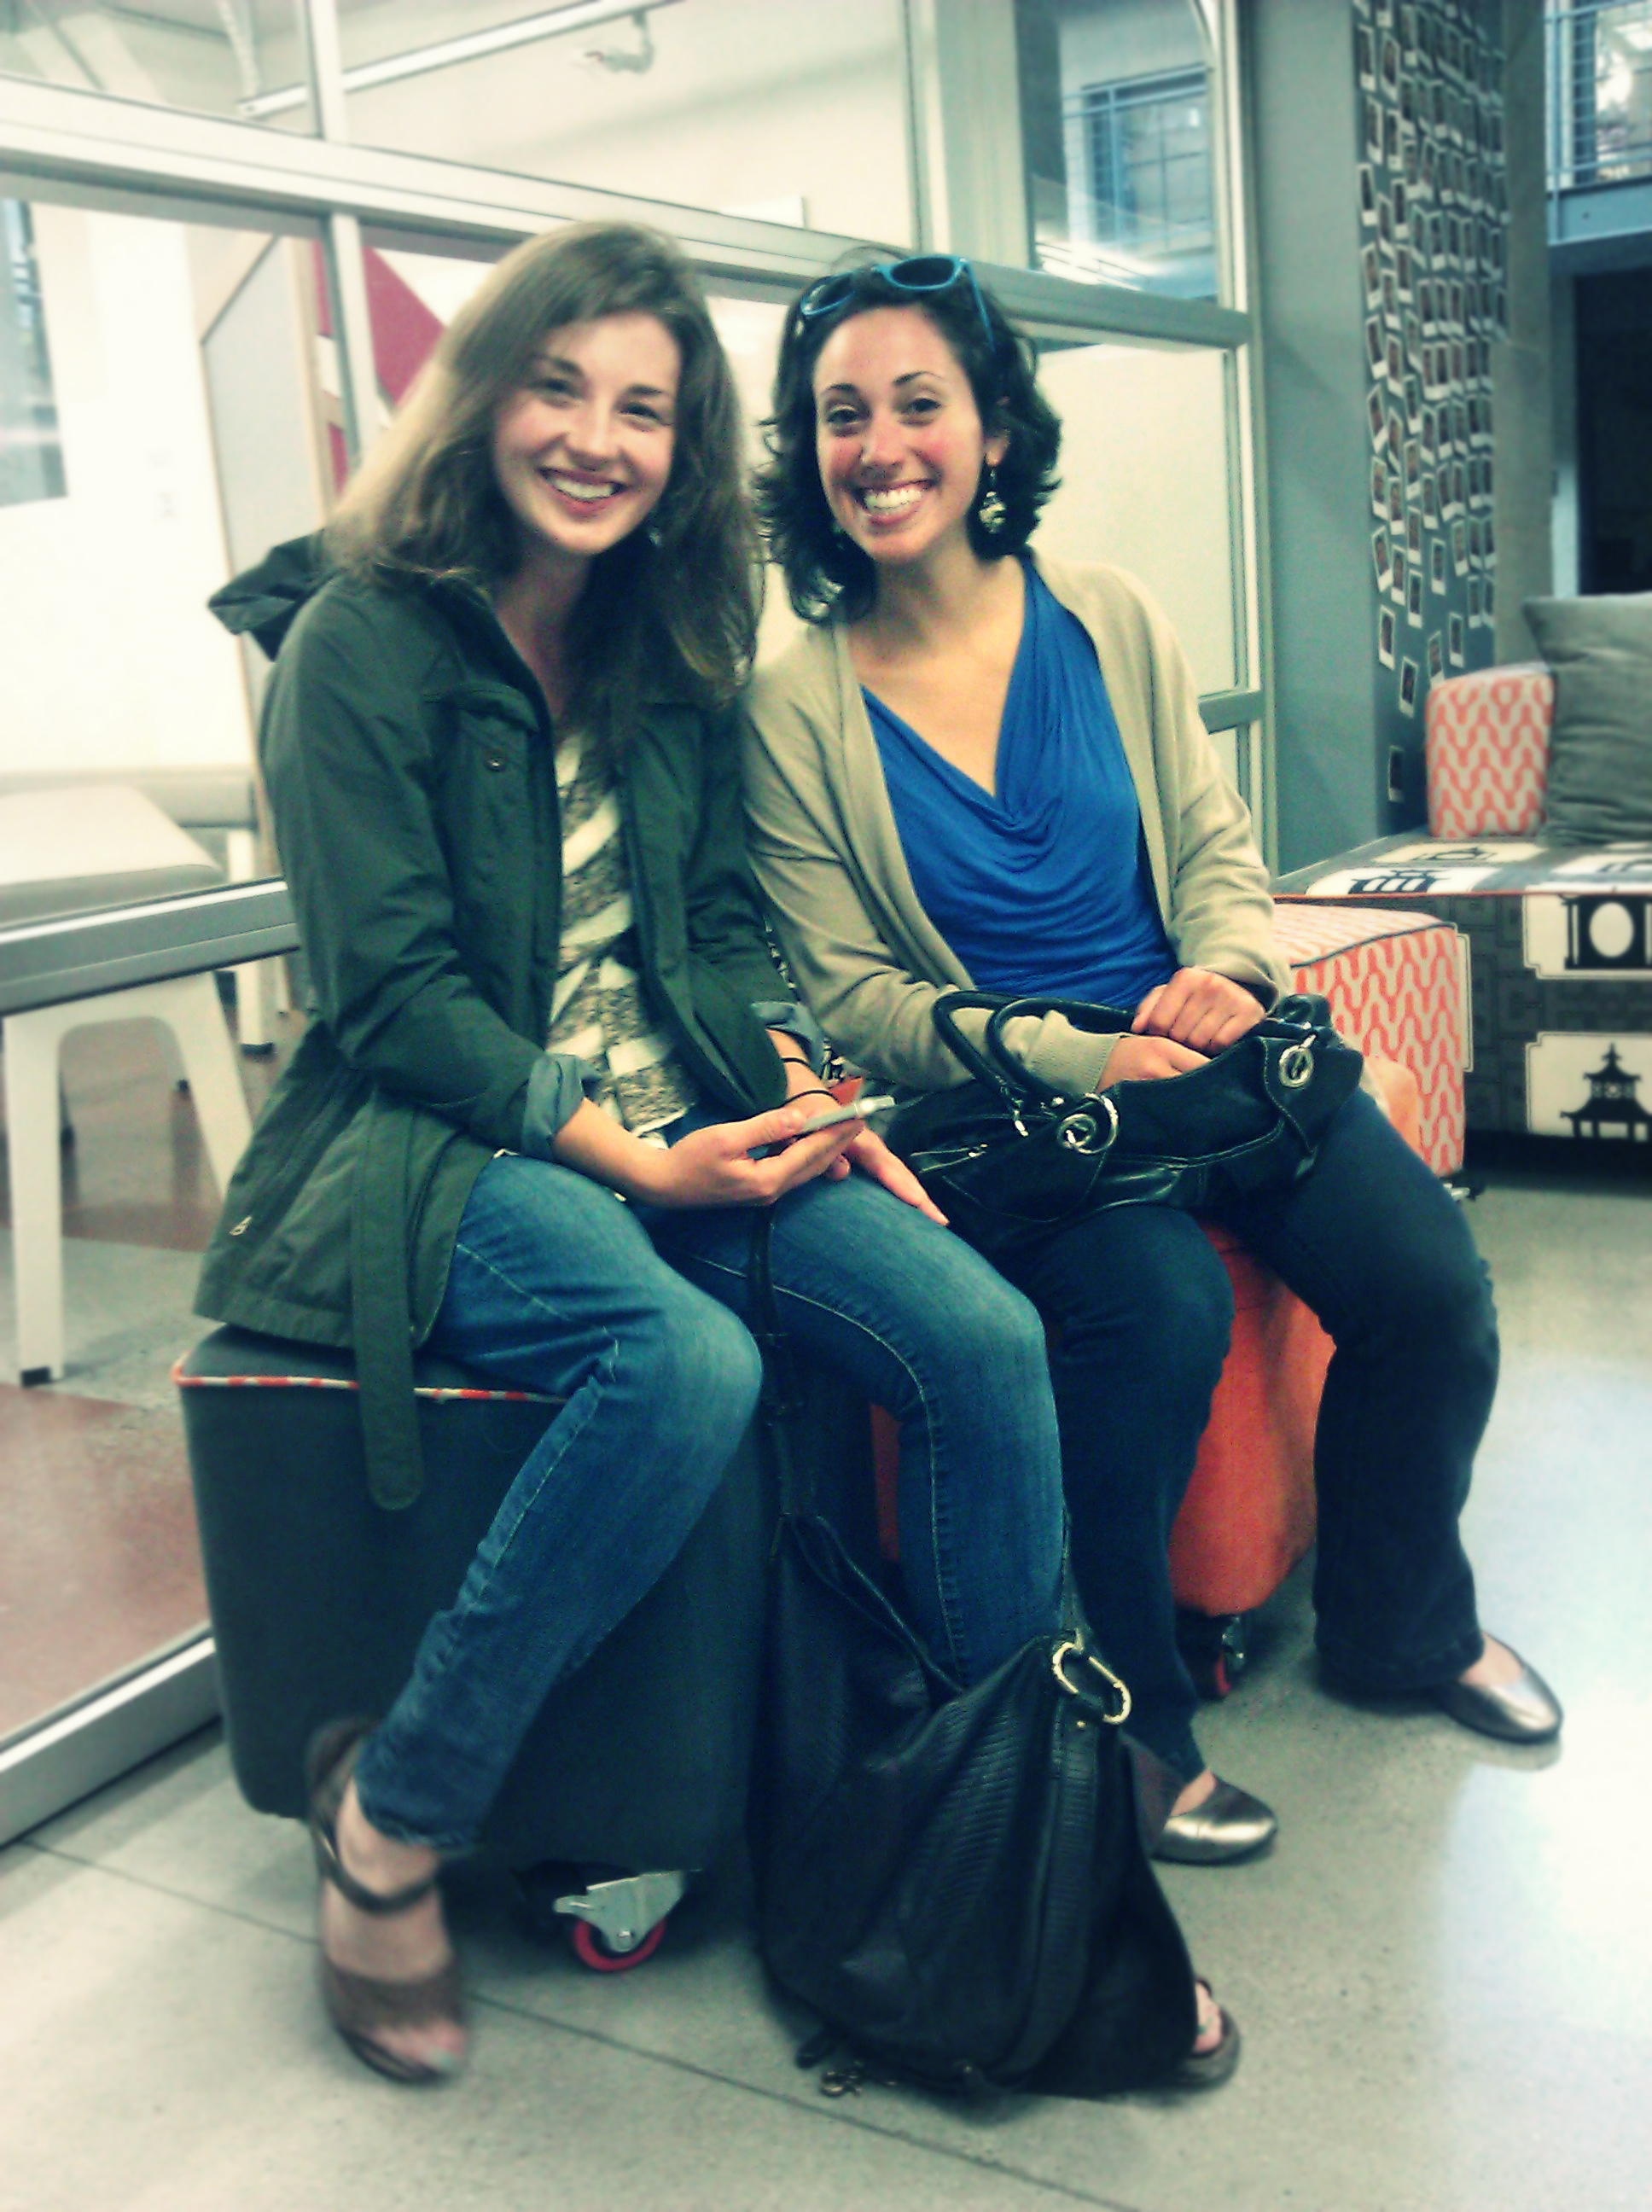 Libby Falck, Director of City X Project, and Kate Ganim, KIDmob Co-Director, touring the Stanford d.school for Friendship Month